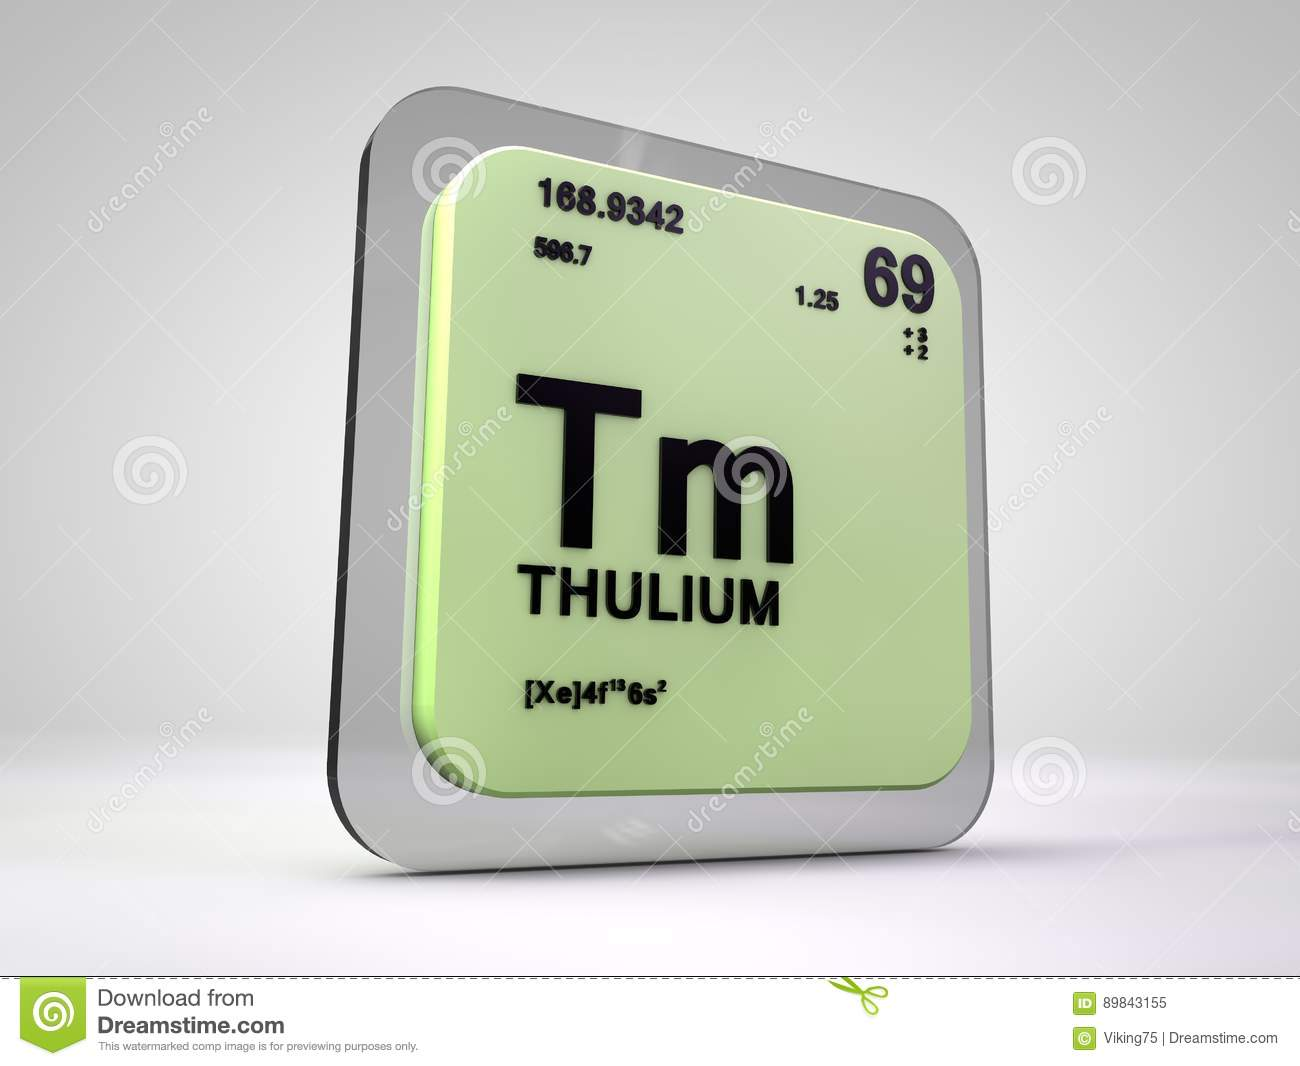 Thulium tm chemical element periodic table stock illustration royalty free illustration download thulium tm chemical element periodic table gamestrikefo Gallery